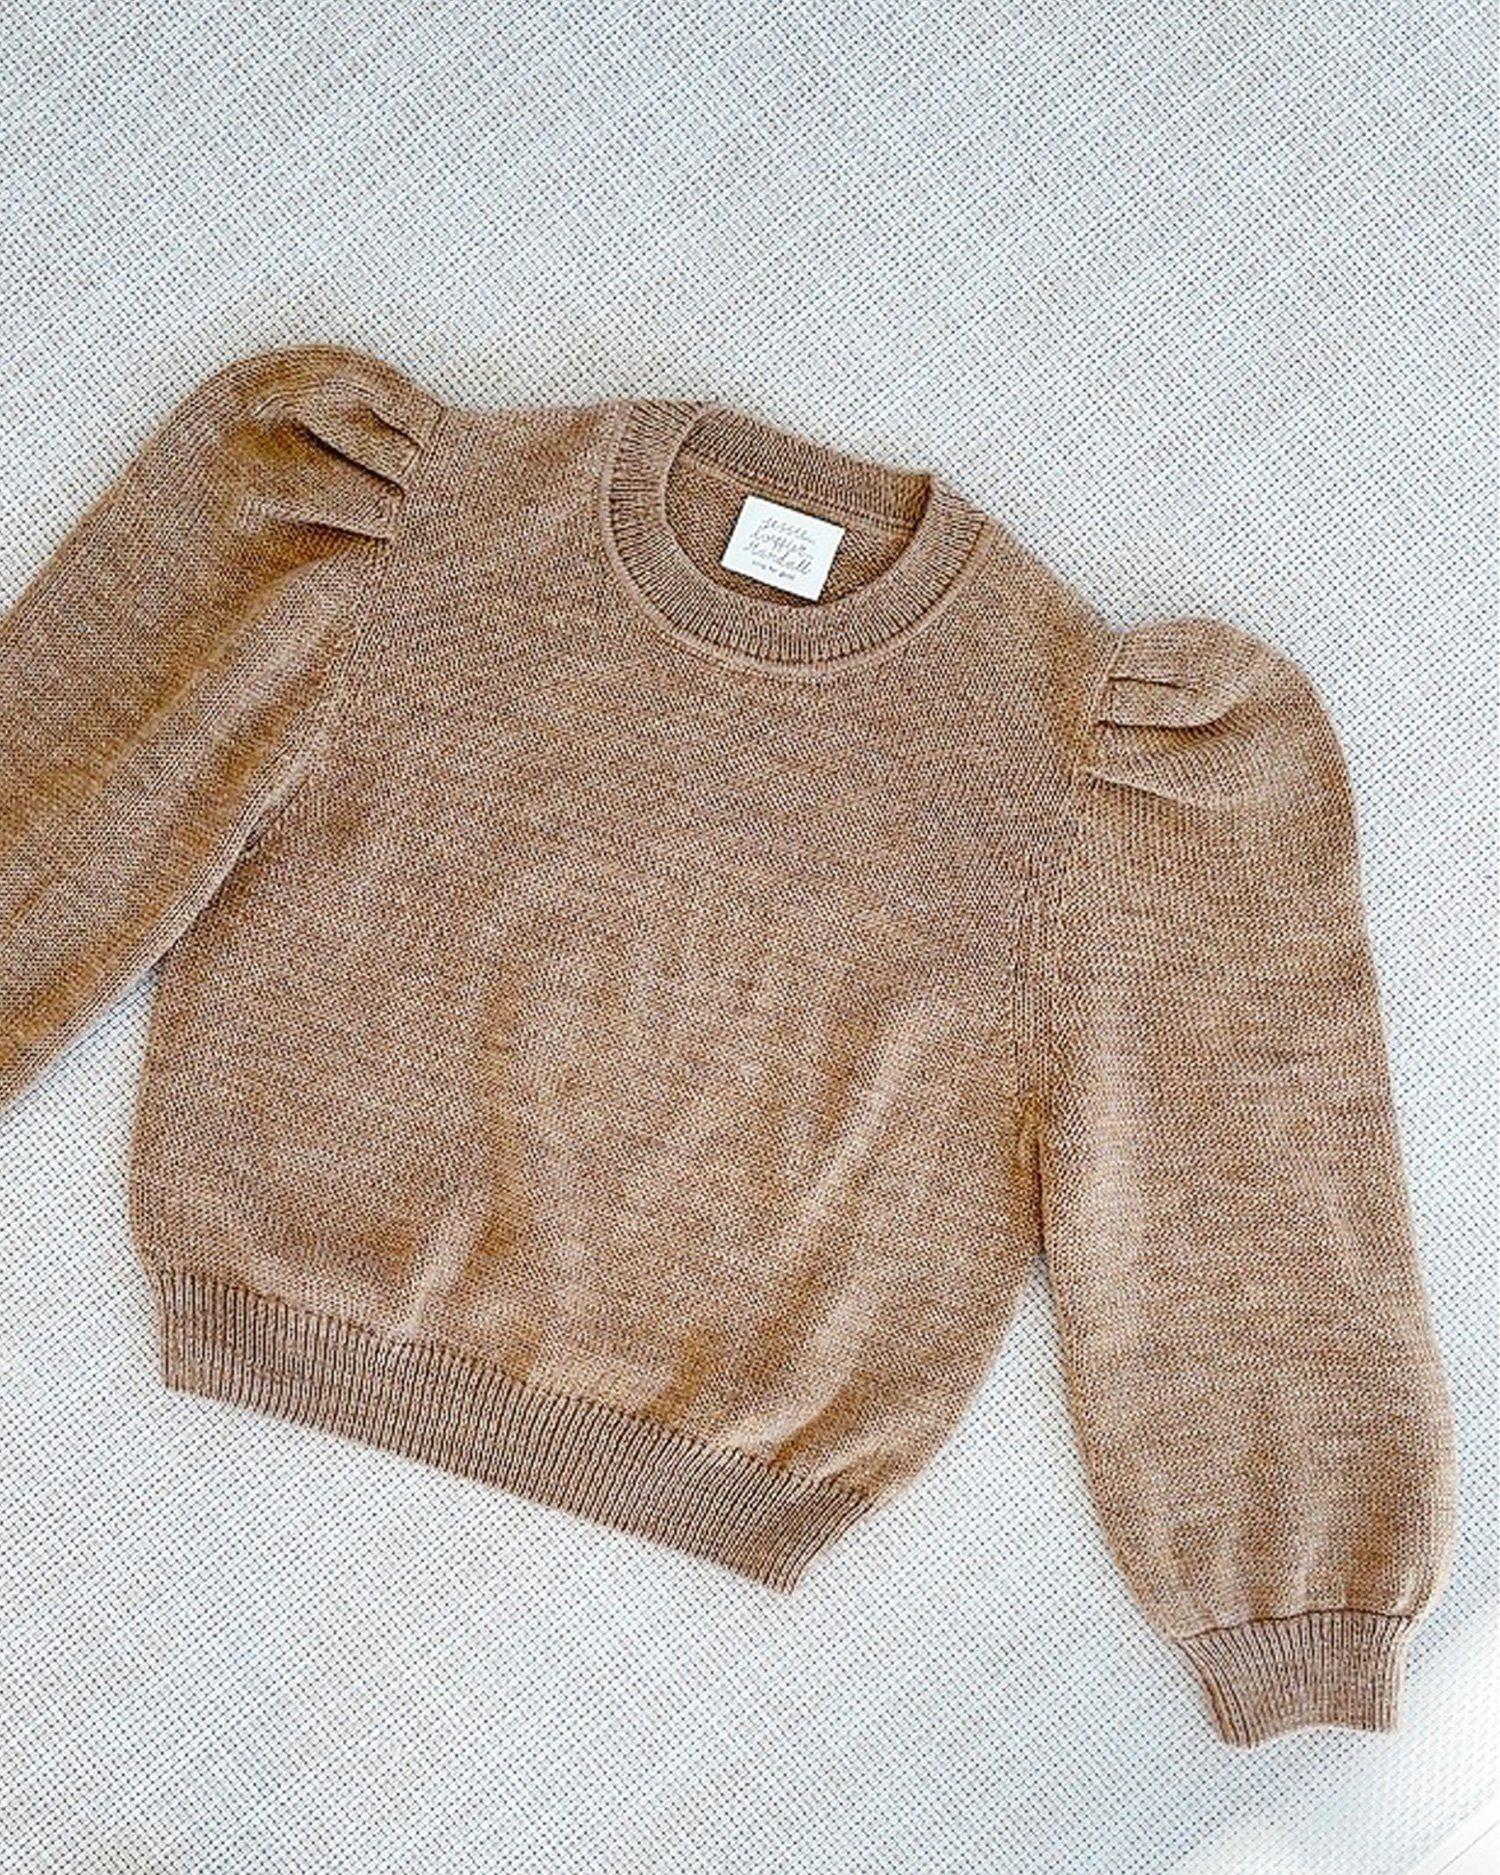 Knits for Good Camel Sweater 1